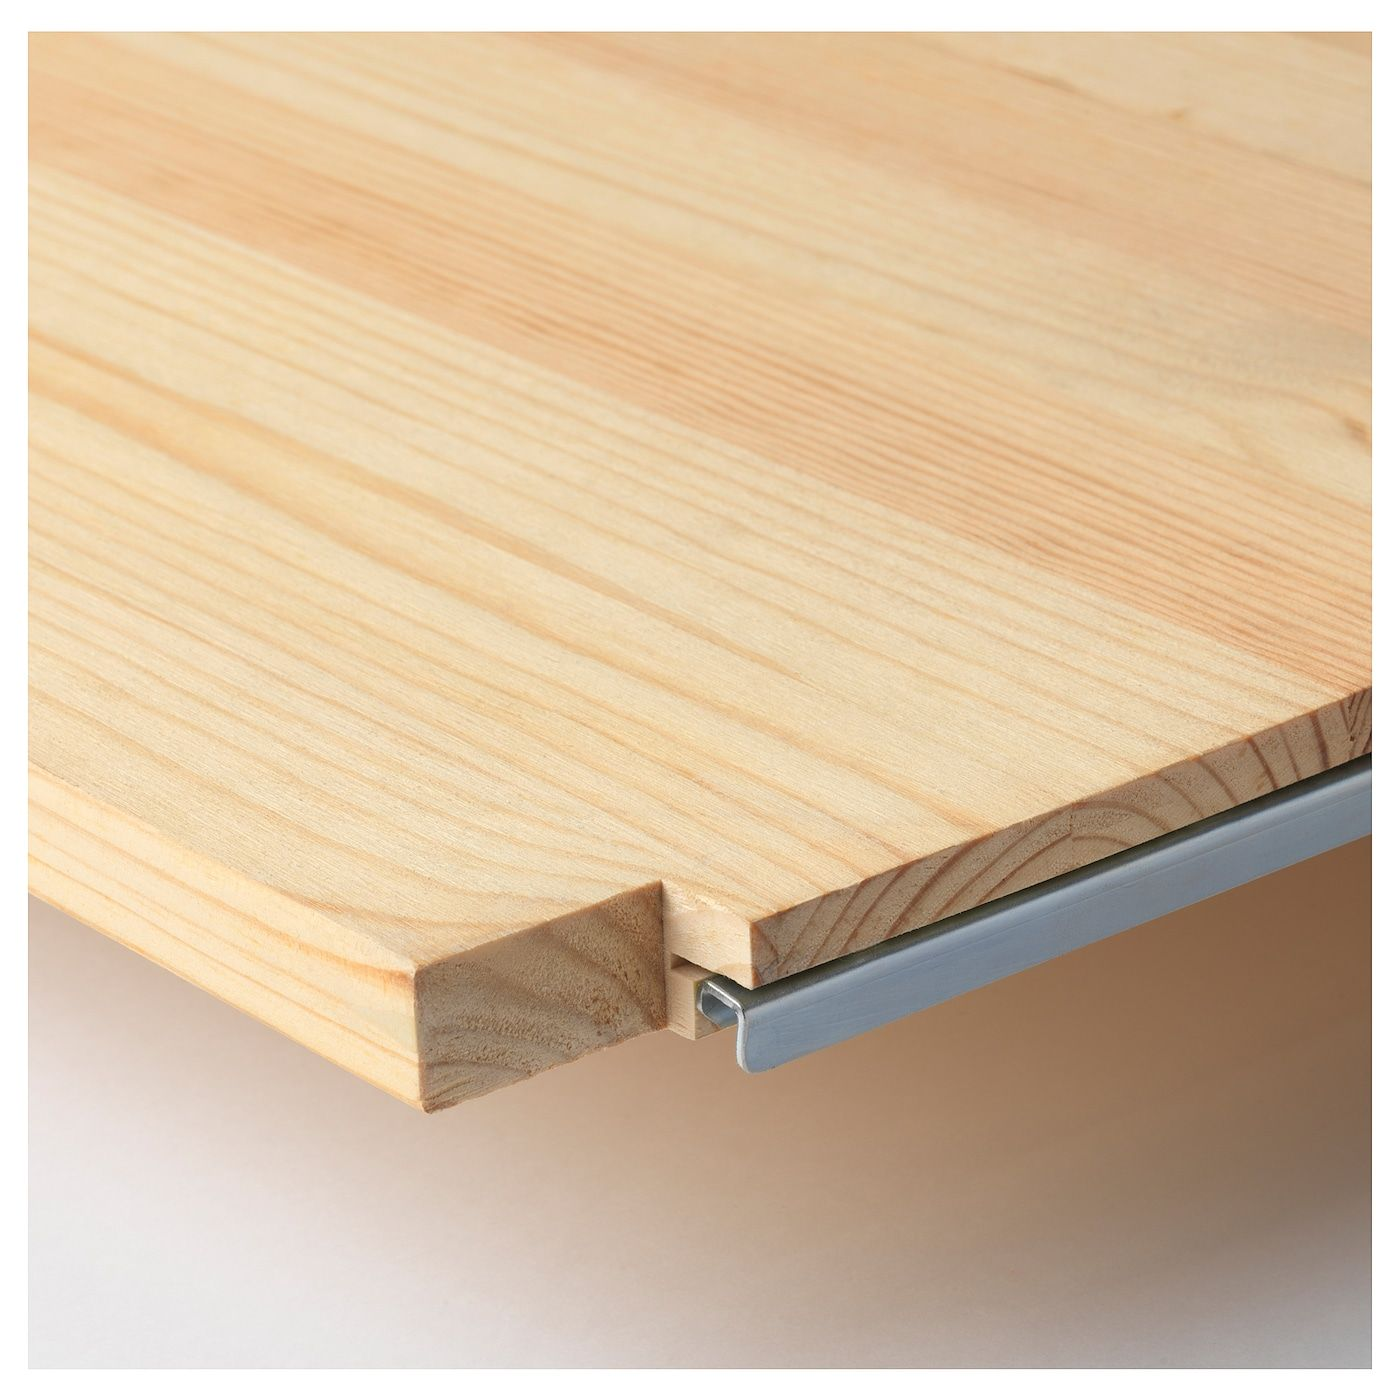 IVAR is made of untreated solid pine